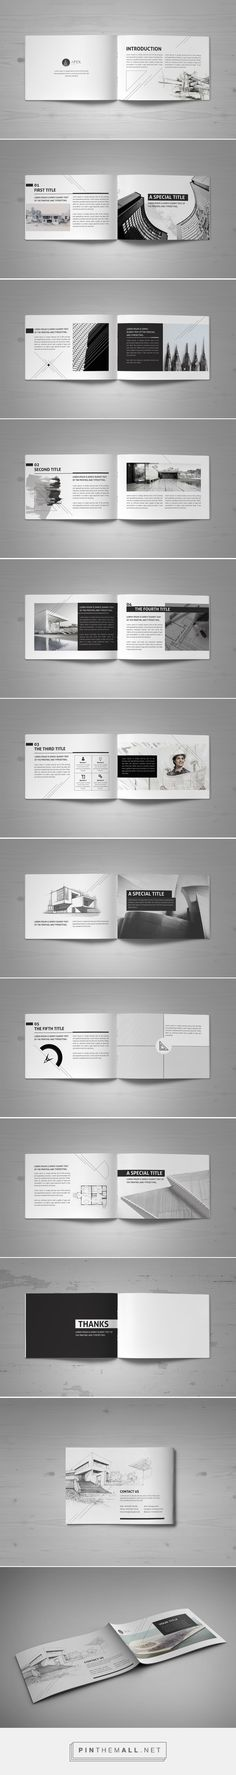 Minimal Modern Black & White Architecture Brochure by Mohammed Al Gharabli: - Graphic Files Layout Design, Design Retro, Graphisches Design, Print Layout, Design Brochure, Booklet Design, Brochure Template, Layout Template, Magazine Ideas